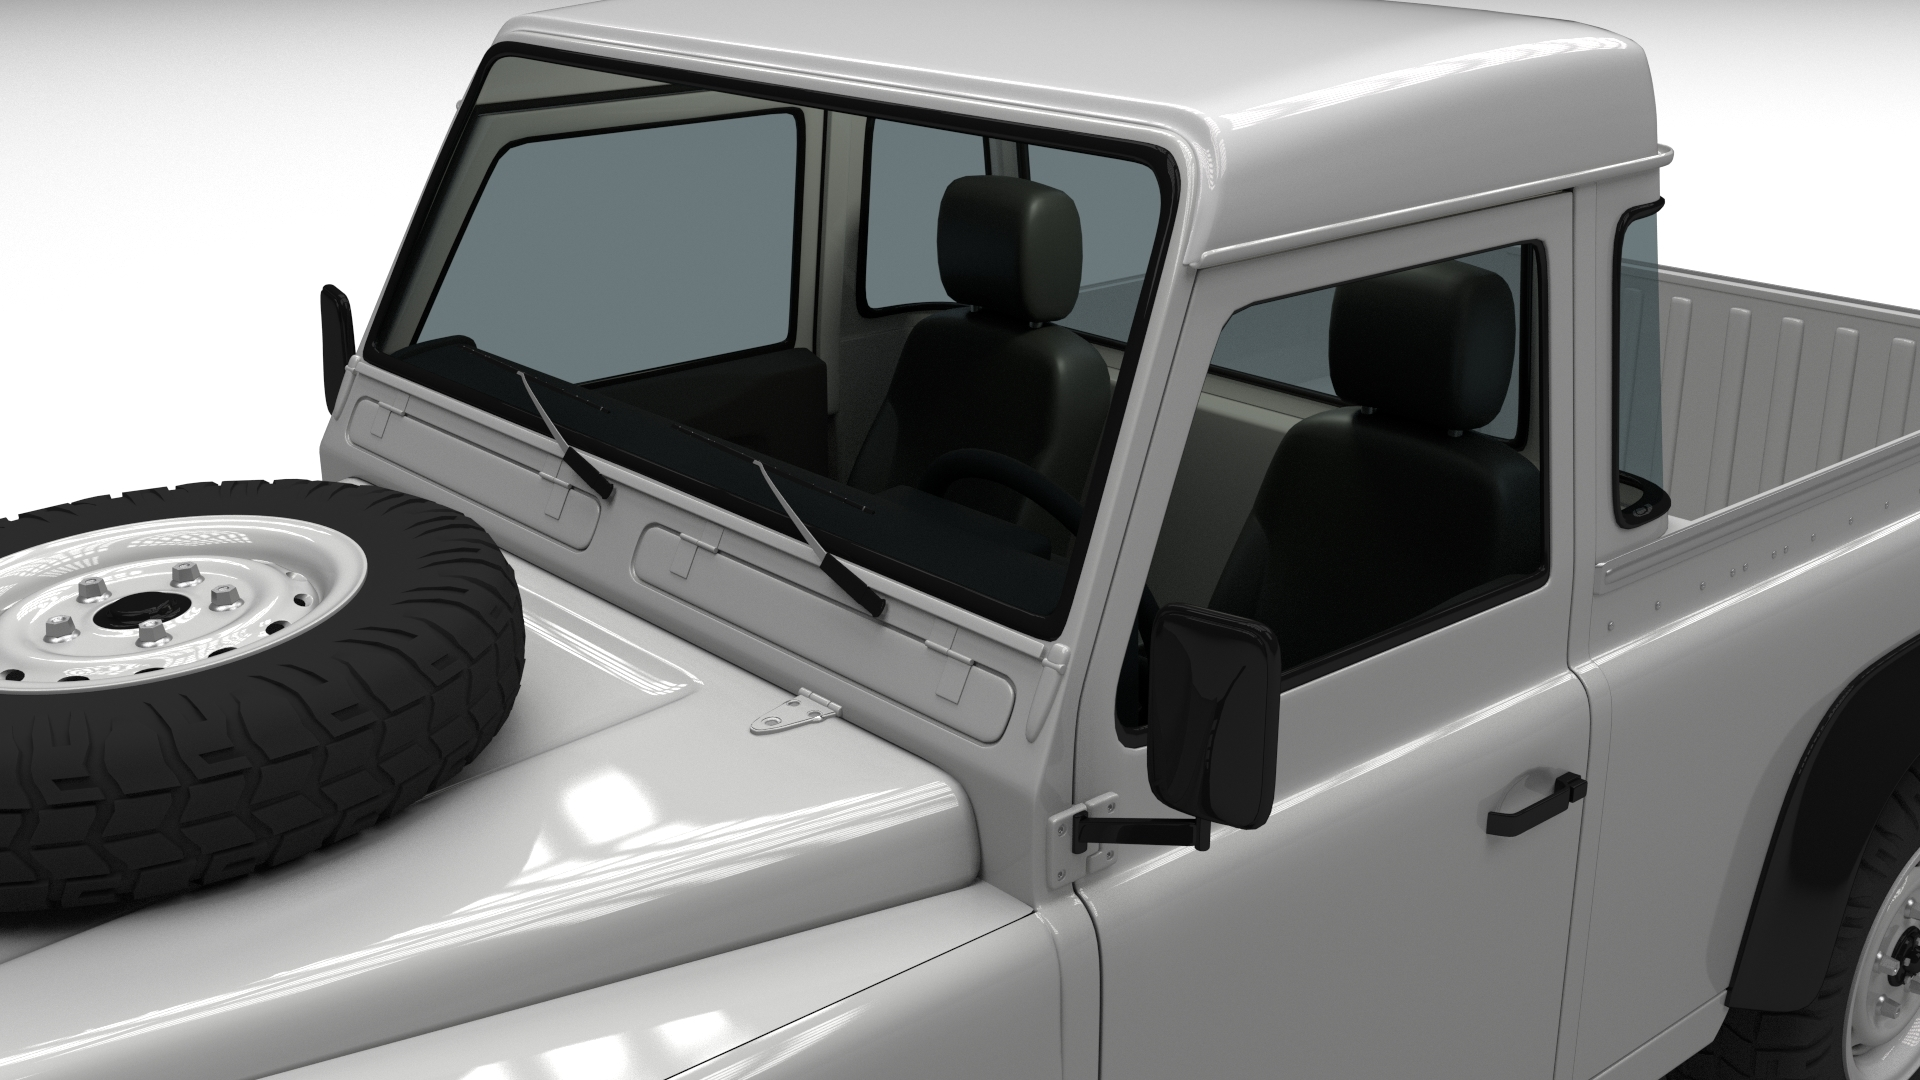 Full Land Rover Defender 90 Pick Up By Dragosburian 3docean